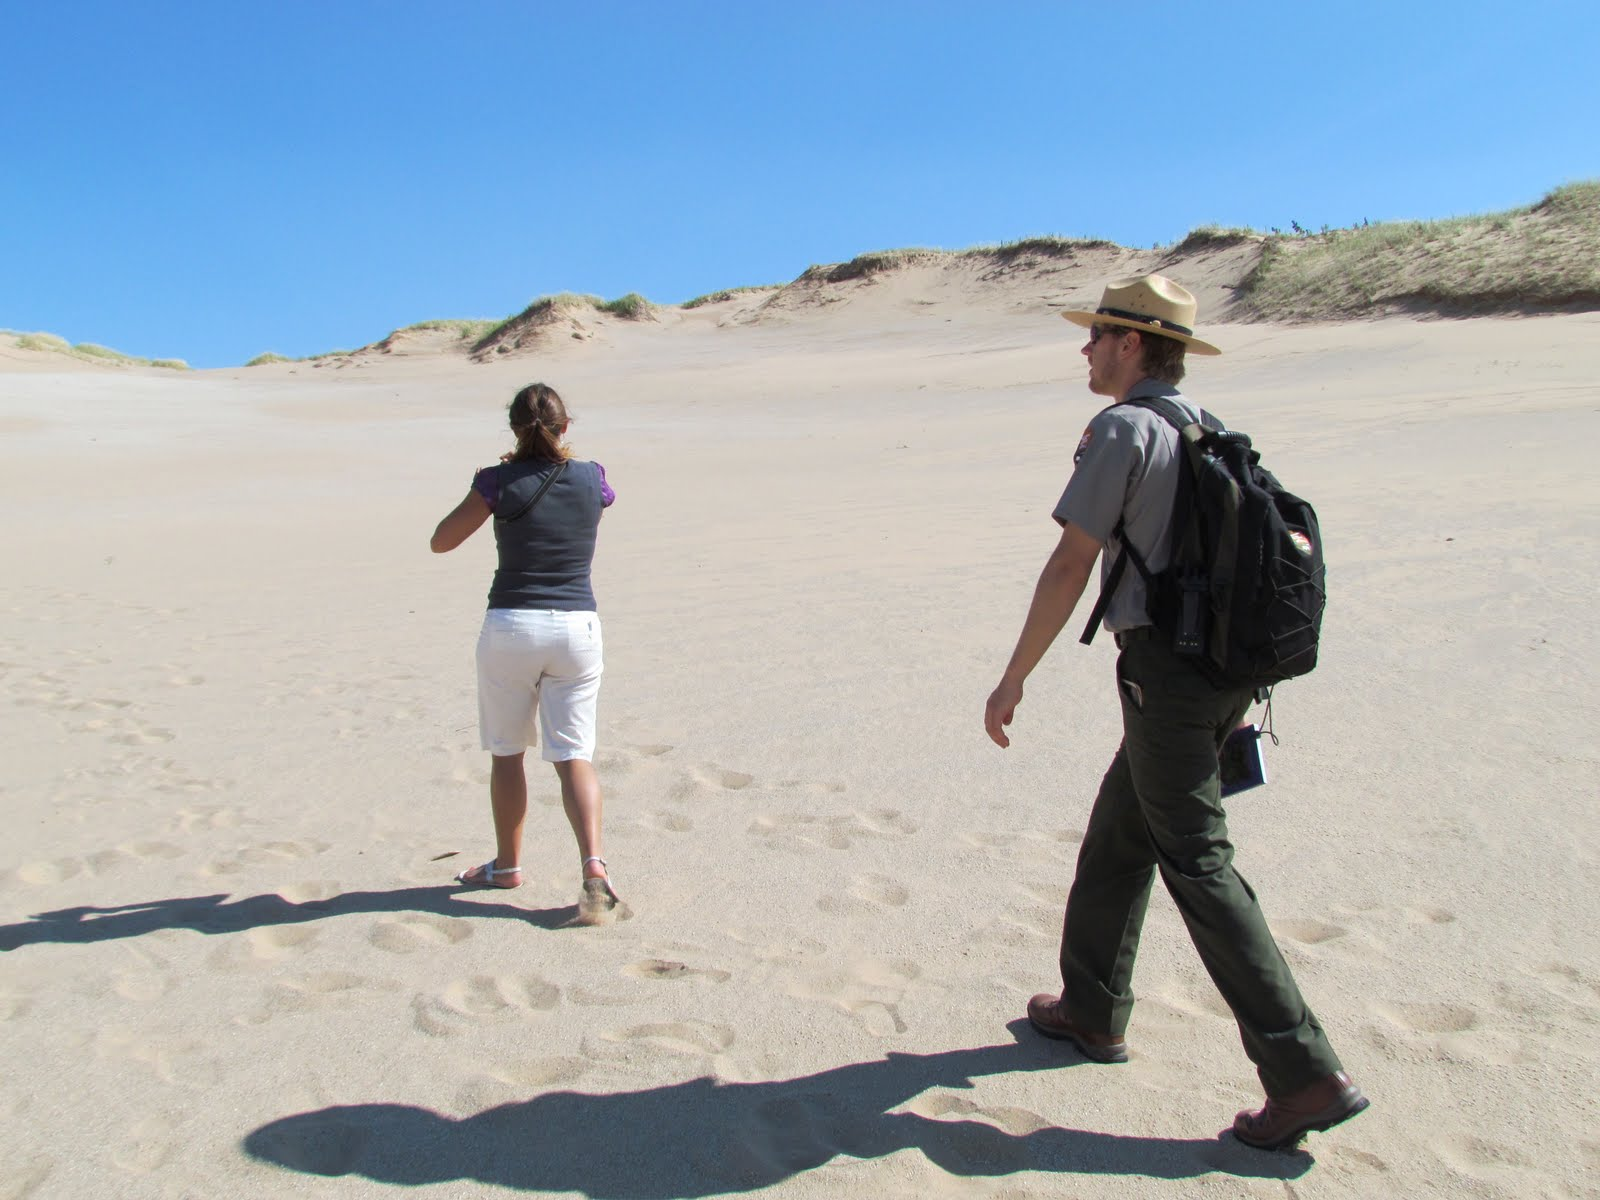 Hiking the Sleeping Bear Dunes with Park Ranger (photo by J. Schechter)